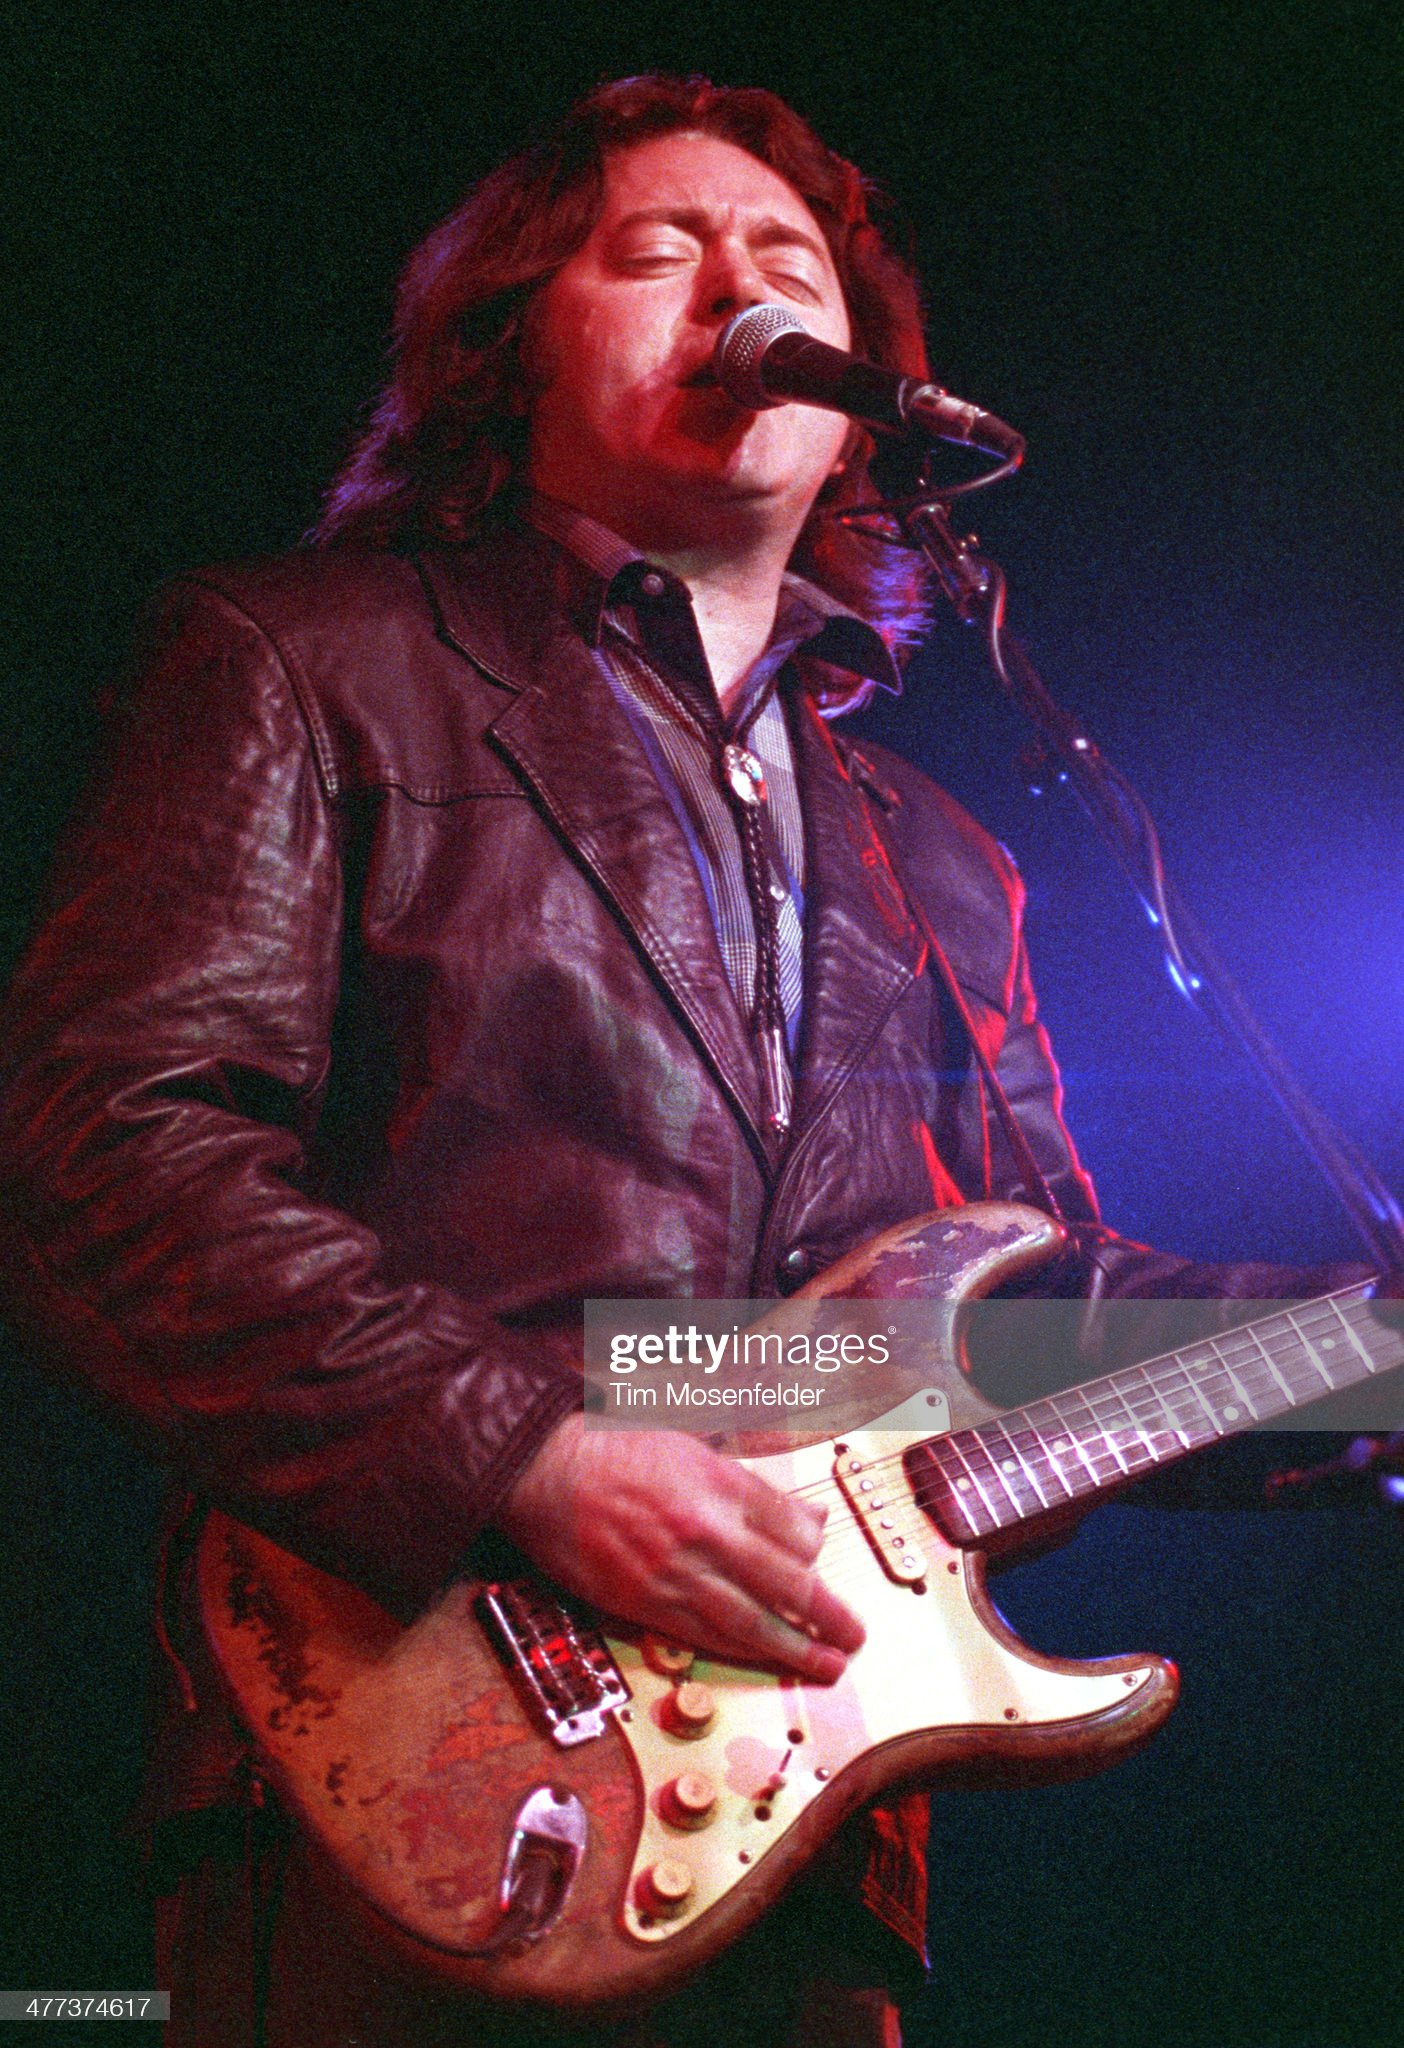 Photos en vrac - Page 18 Rory-gallagher-performs-at-the-catalyst-on-march-15-1991-in-santa-picture-id477374617?s=2048x2048